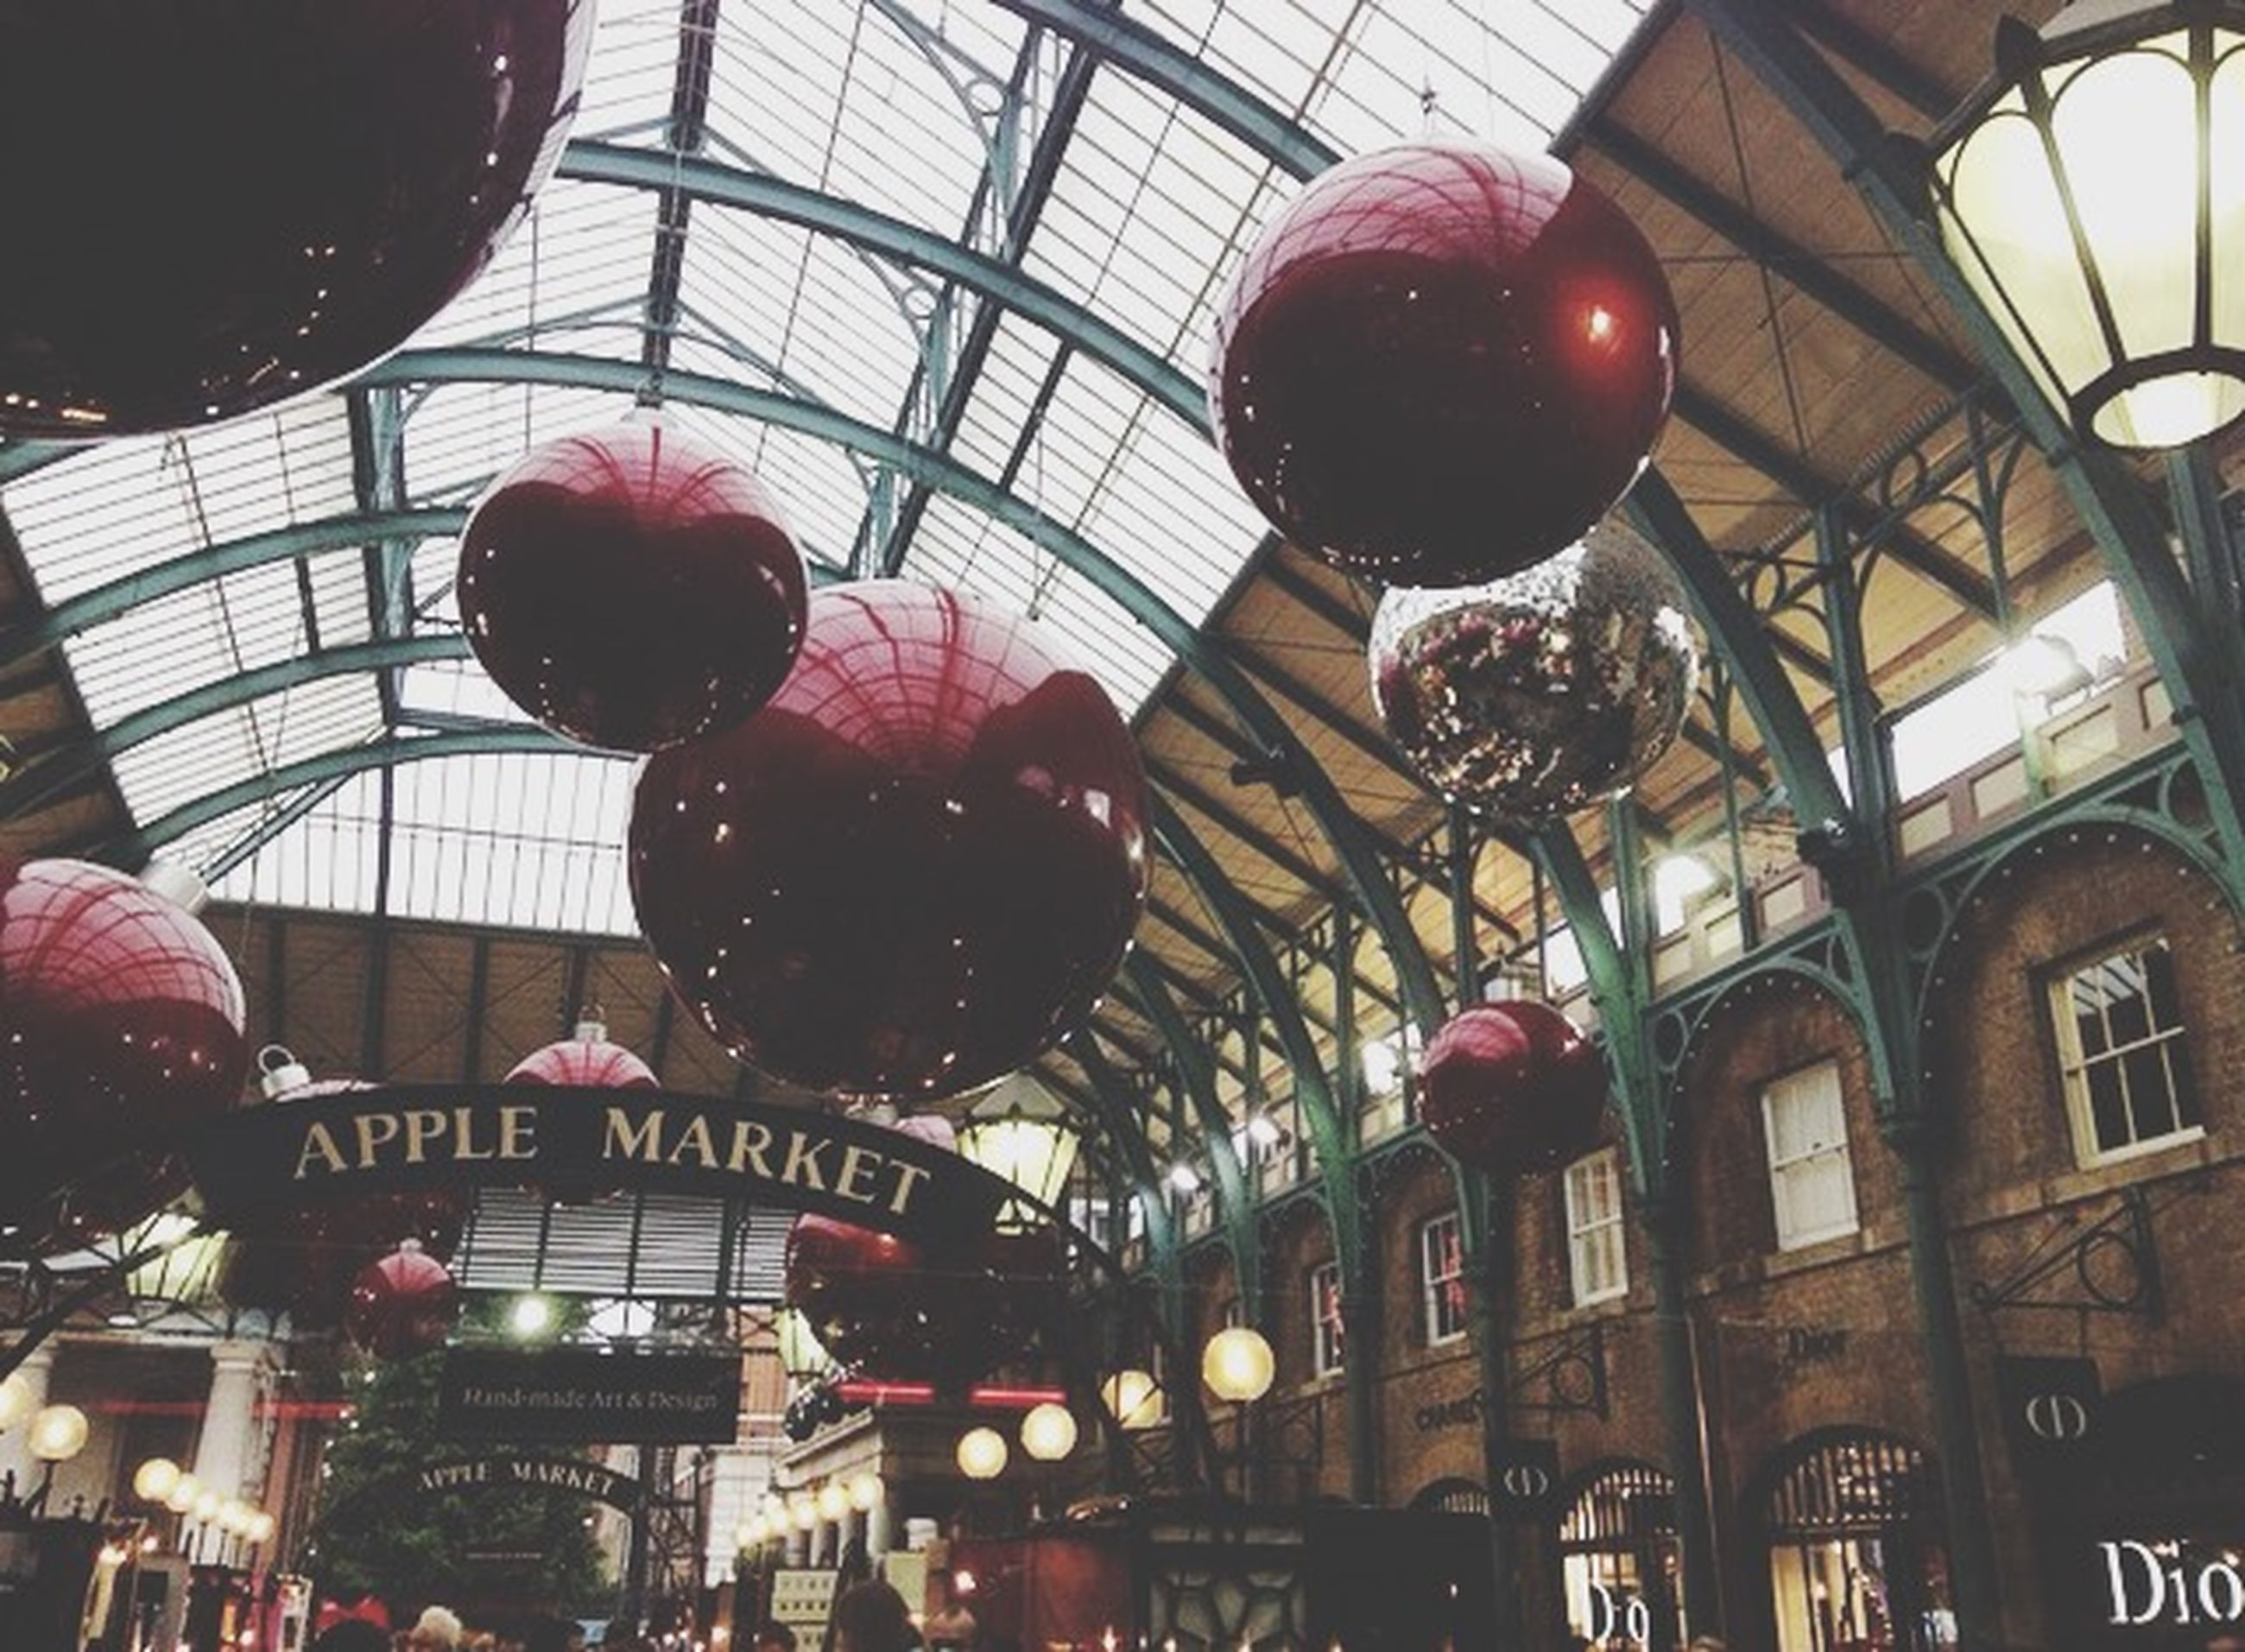 indoors, architecture, low angle view, built structure, hanging, decoration, lighting equipment, illuminated, ceiling, window, lantern, red, building exterior, glass - material, christmas, christmas tree, christmas decoration, no people, chinese lantern, electric lamp